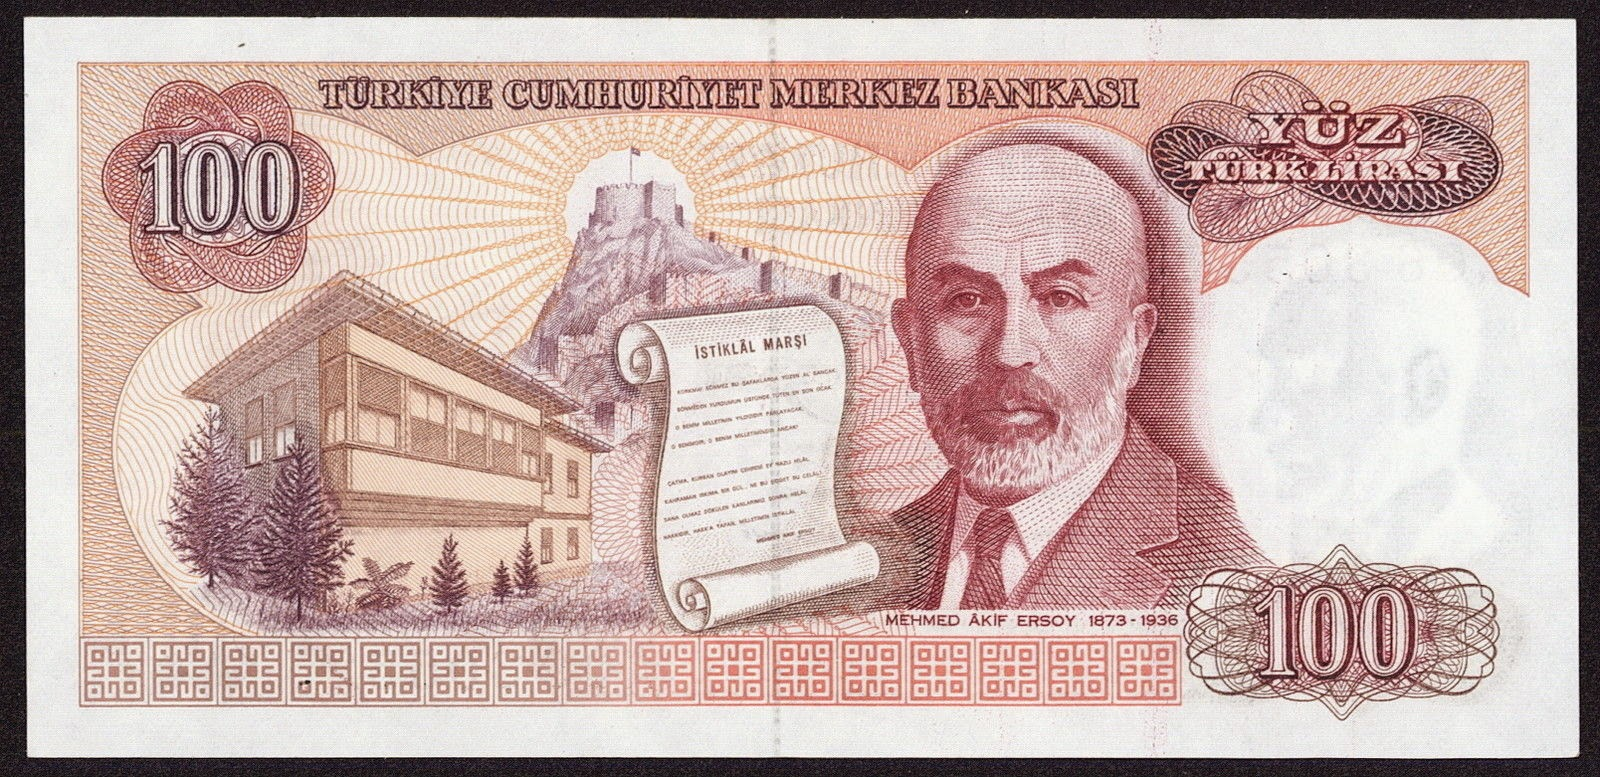 "Turkey currency money 100 Turkish Lira ""Türk Lirasi"" note, Mehmet Akif Ersoy"